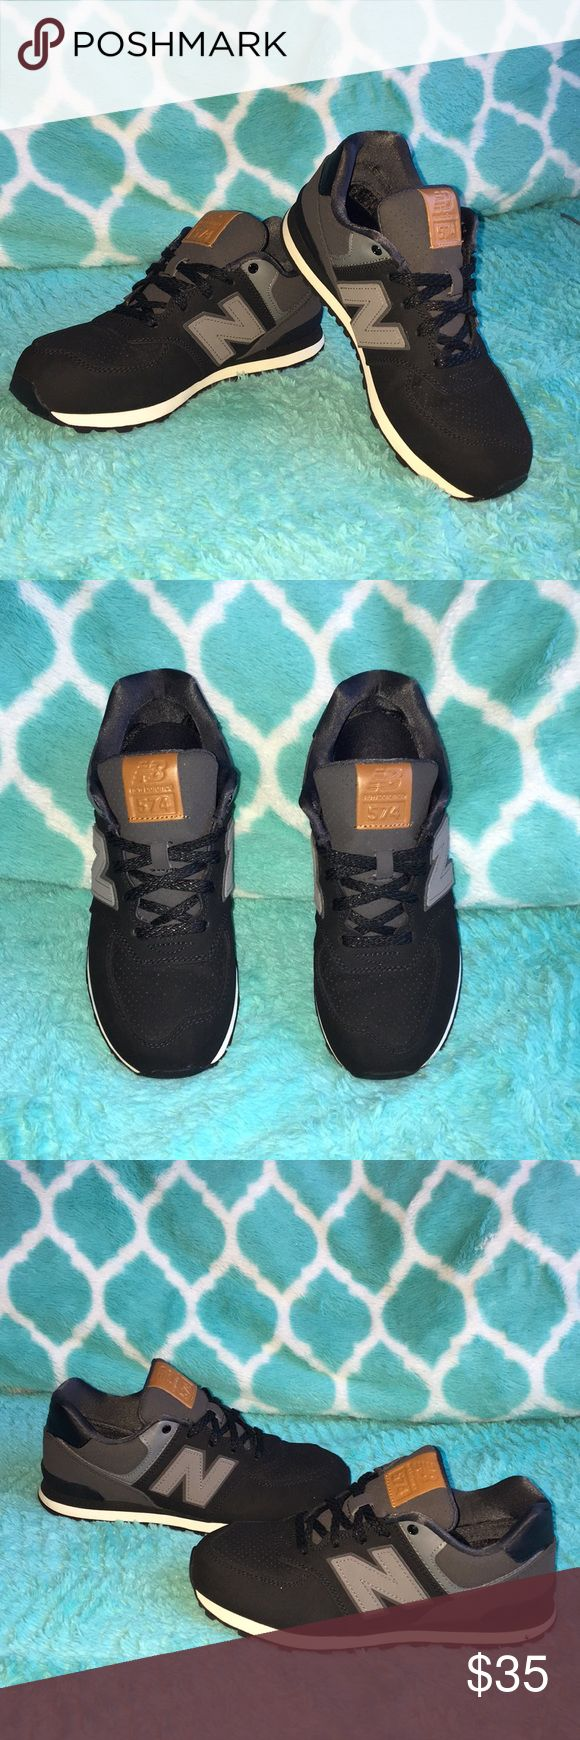 Shoes Tween New Balance 574 Black Athletic Shoe New Balance Shoes Sneakers